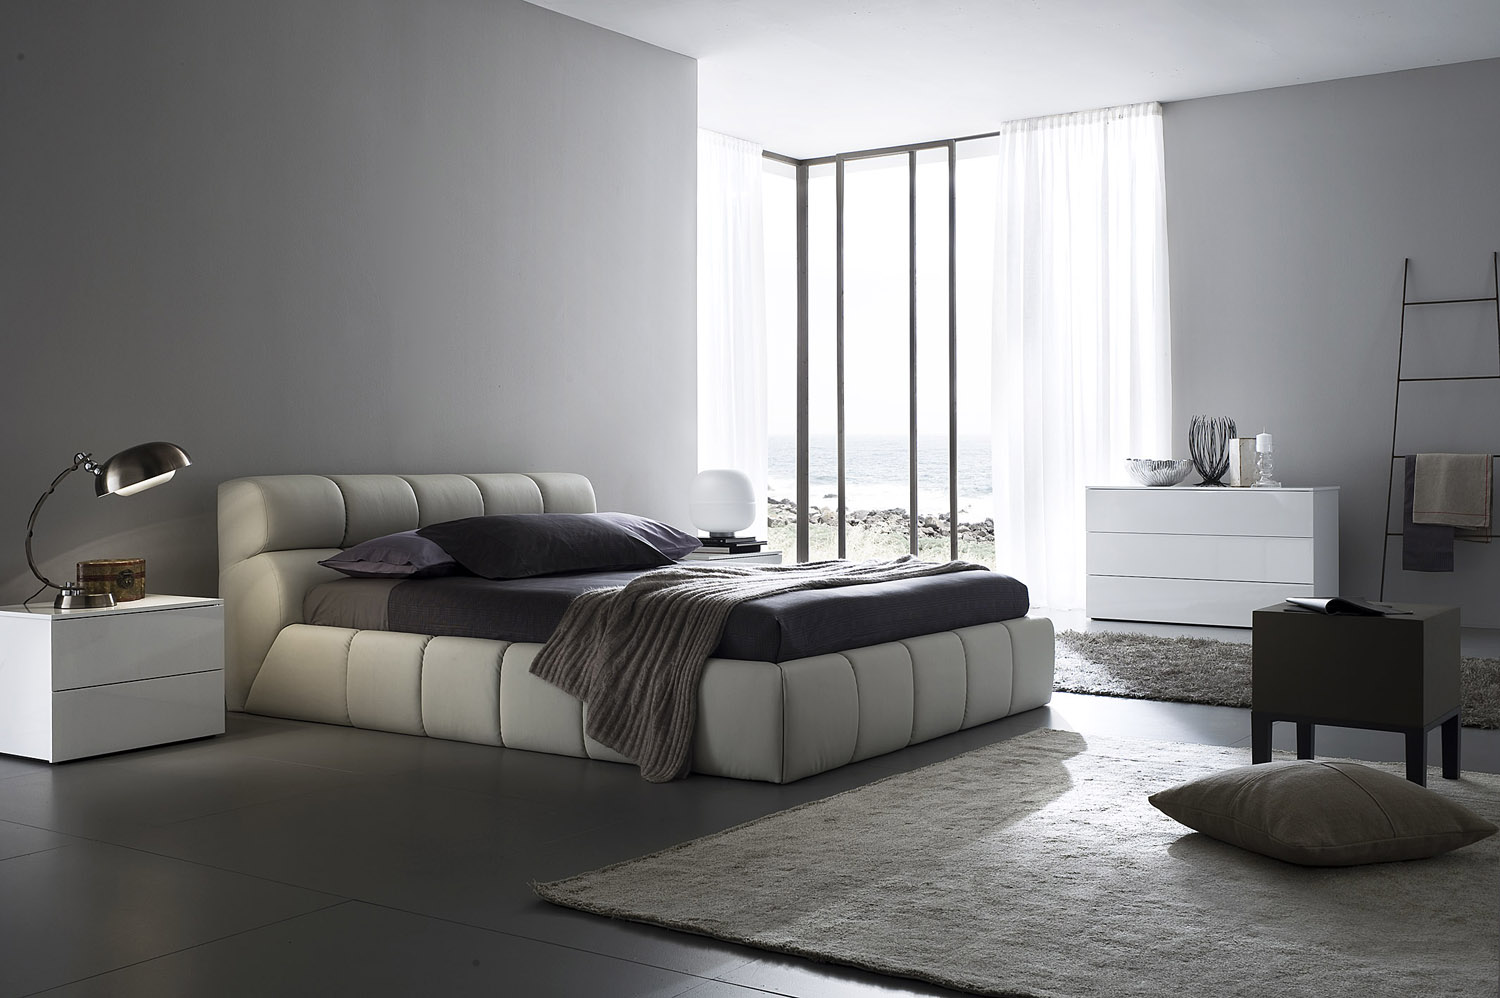 Camere Da Letto Hulsta : Bedroom decorating ideas from evinco